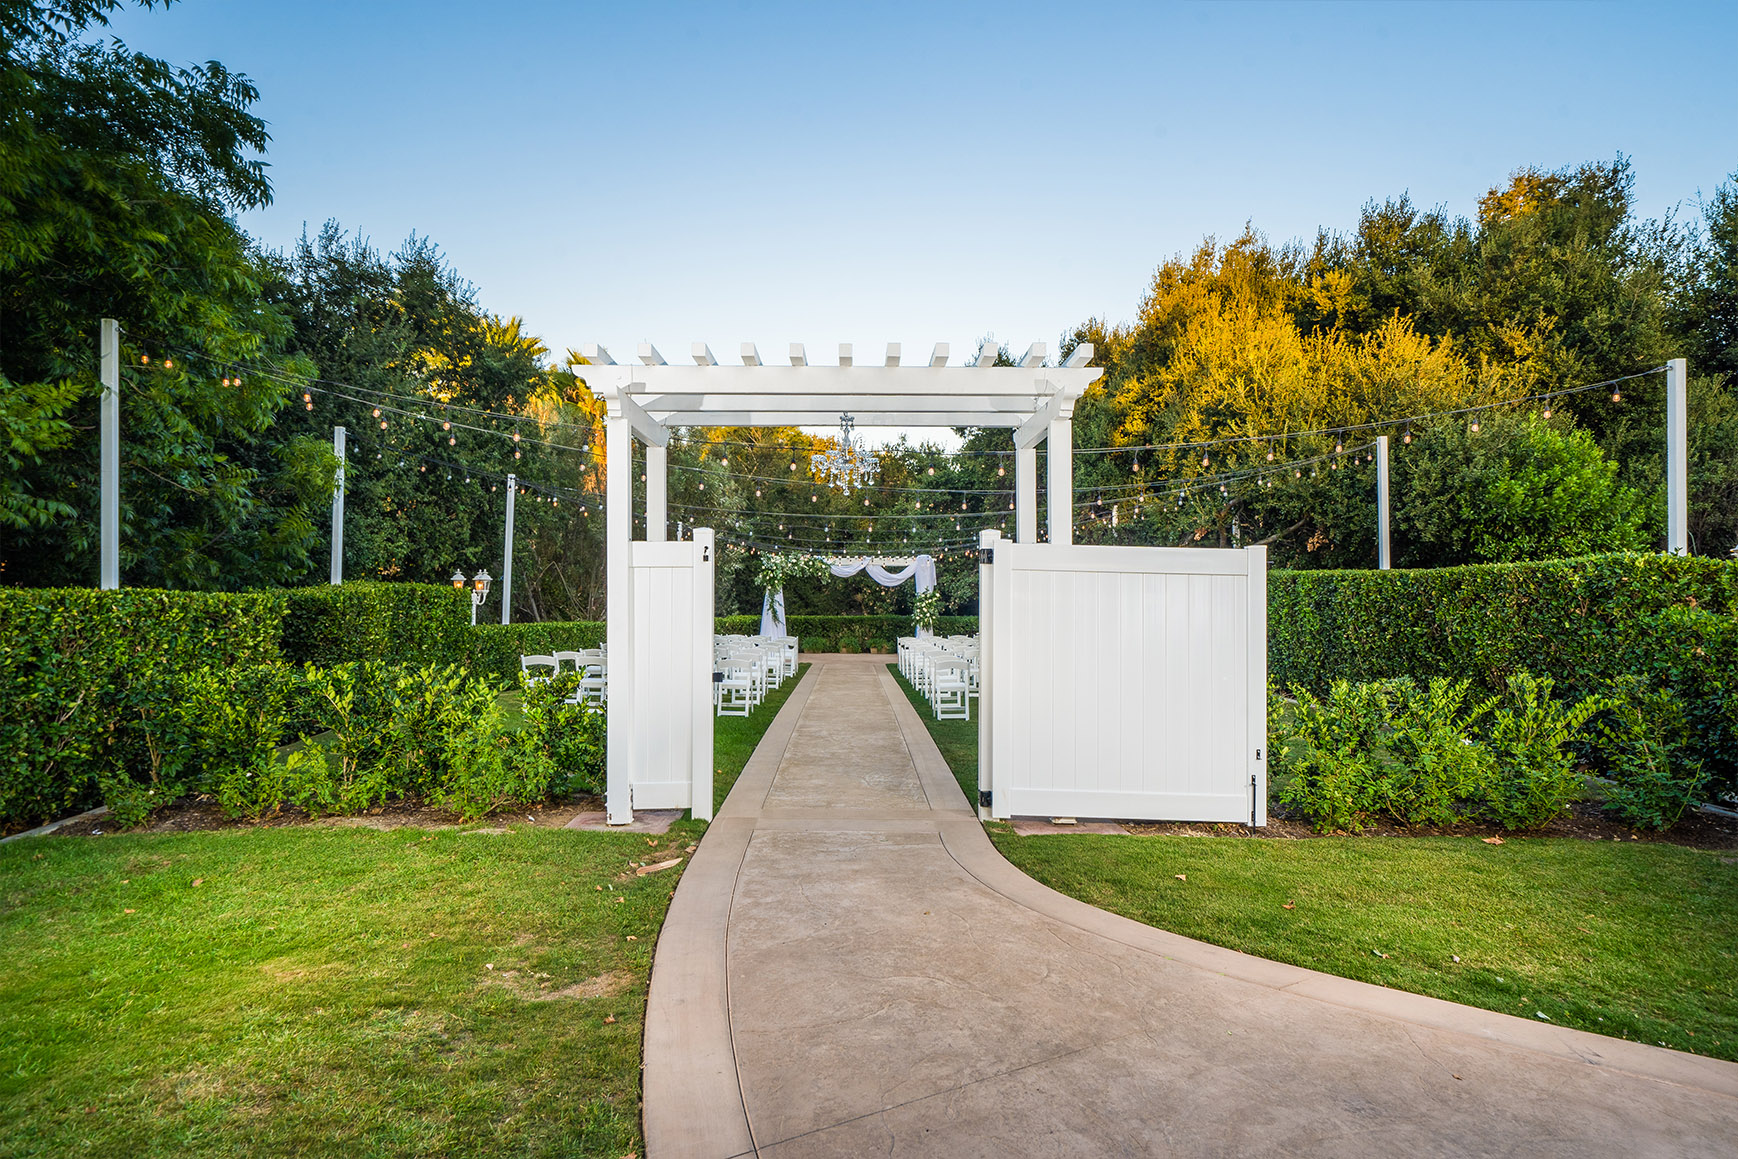 Secret garden ceremony - Sierra La Verne - La Verne, California - Claremont Area - Los Angeles County - Wedgewood Weddings